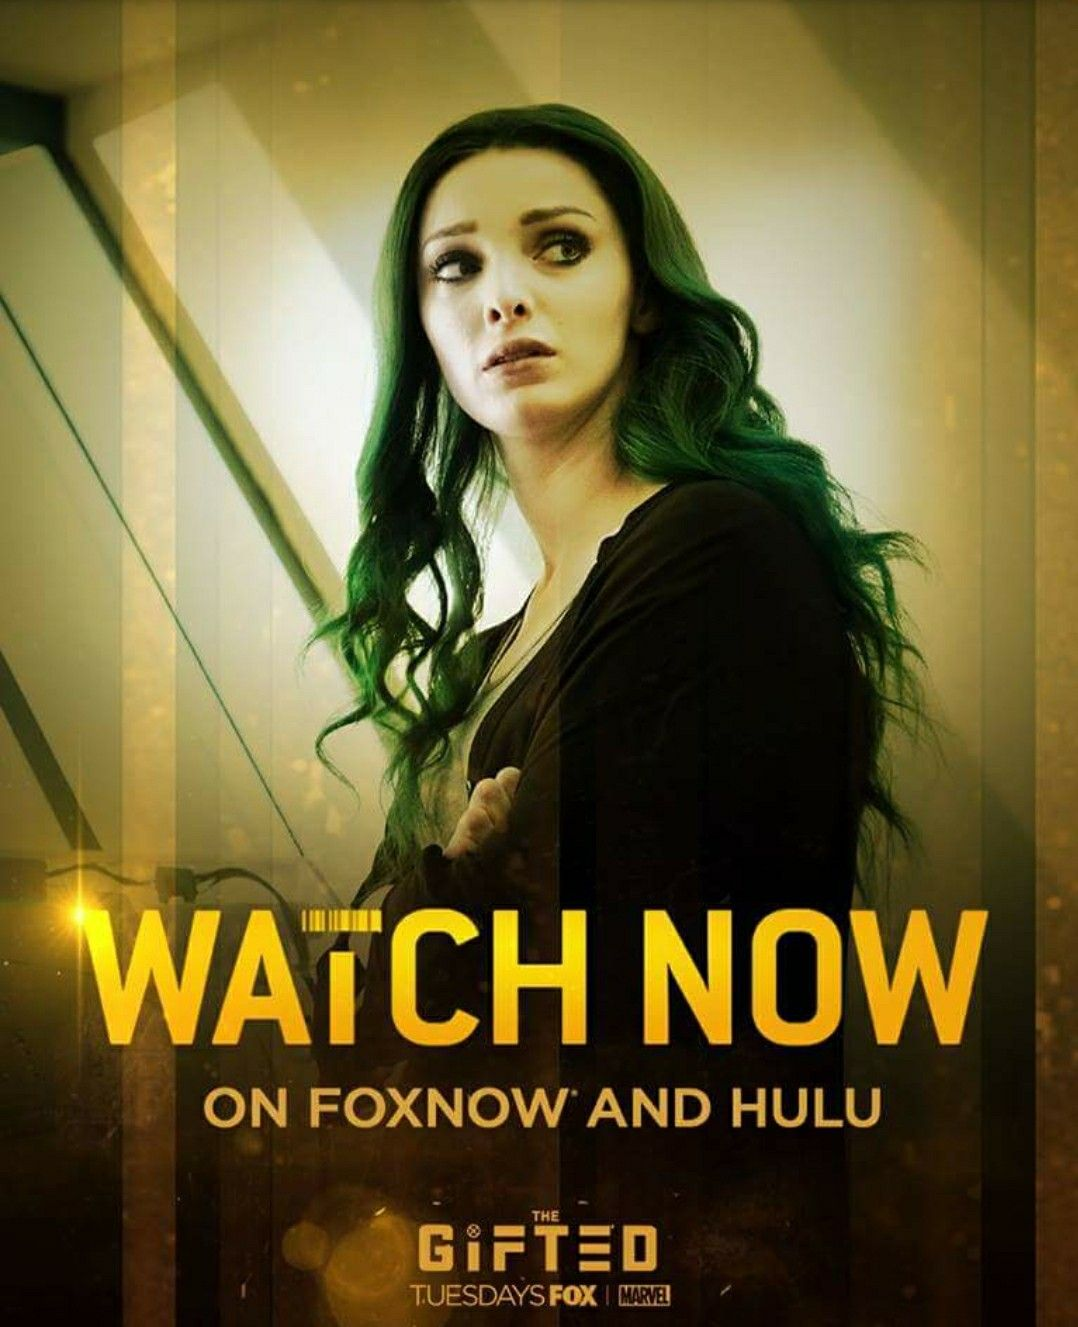 The Gifted | TV Show | Polaris | The Gifted | The gifted tv show